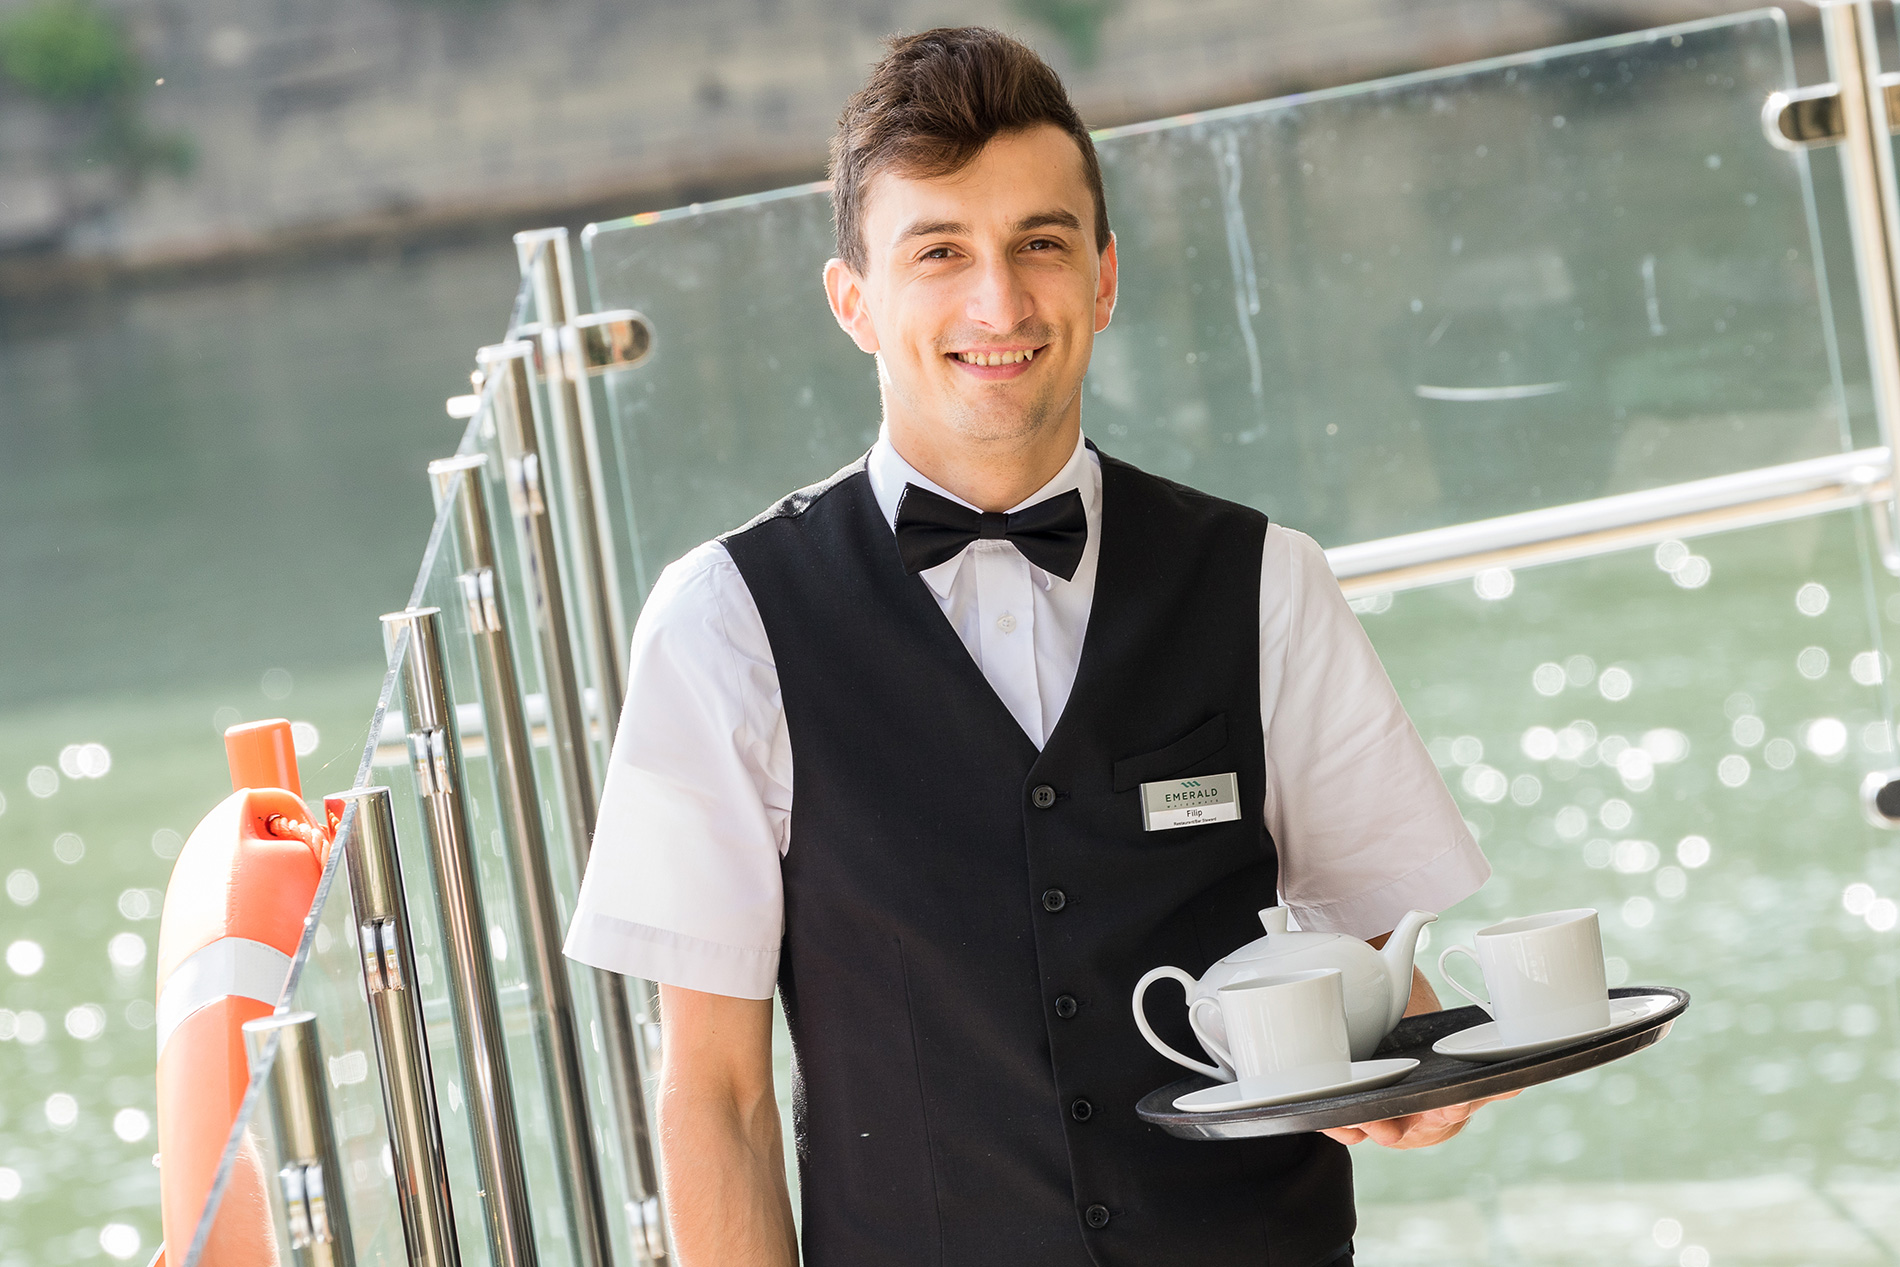 Emerald Waterways on board staff serving drinks